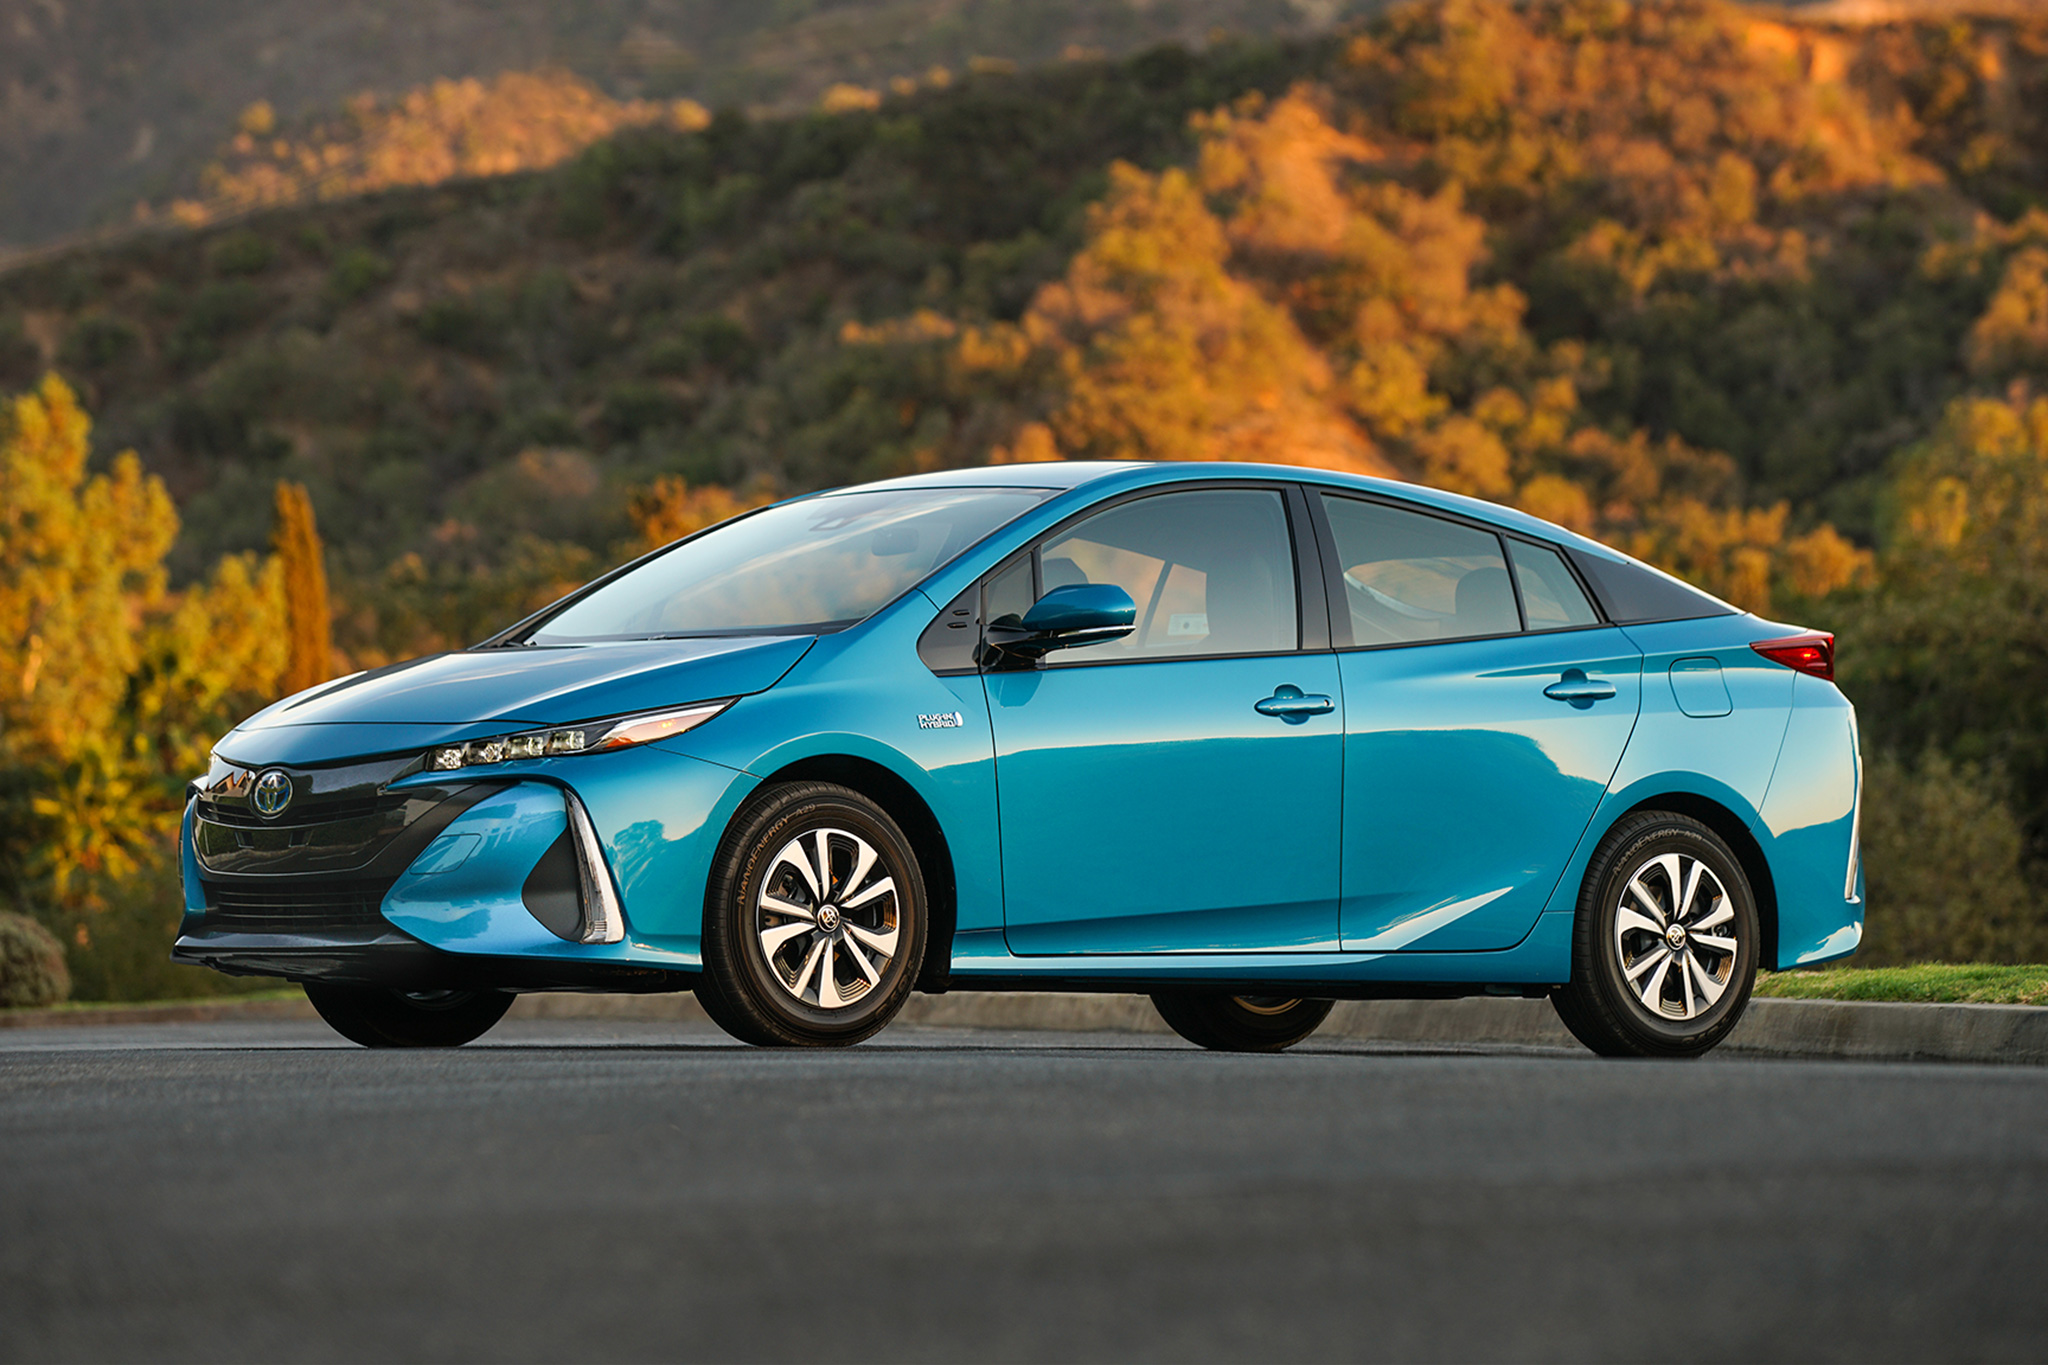 2017 toyota prius prime preview by steve purdy. Black Bedroom Furniture Sets. Home Design Ideas